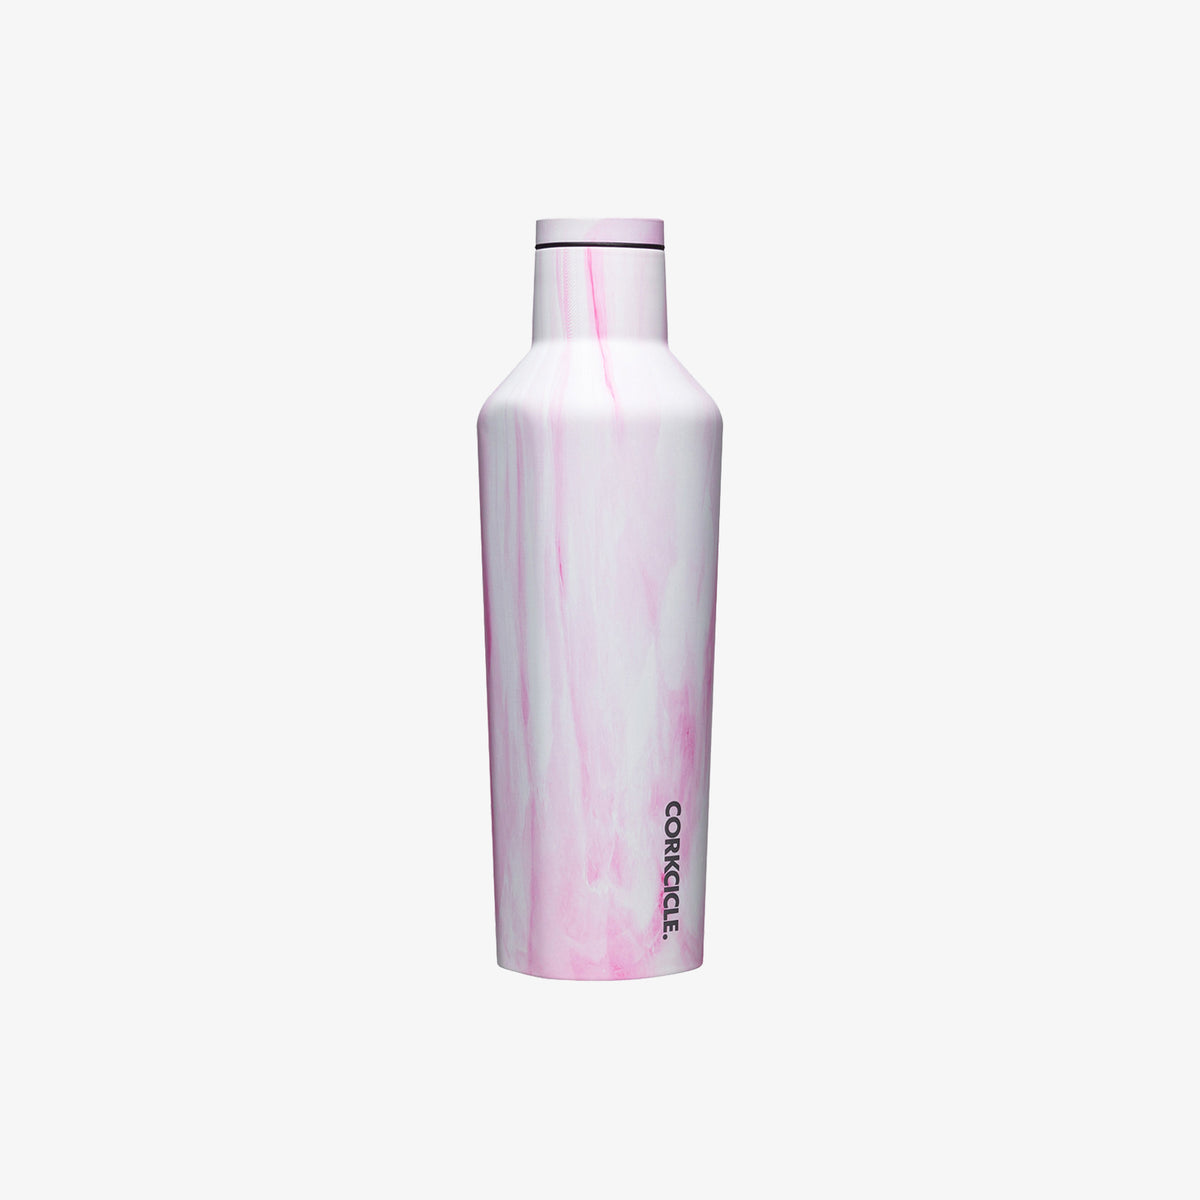 Corkcicle Origins Canteen Bottle 475ml - Pink Marble